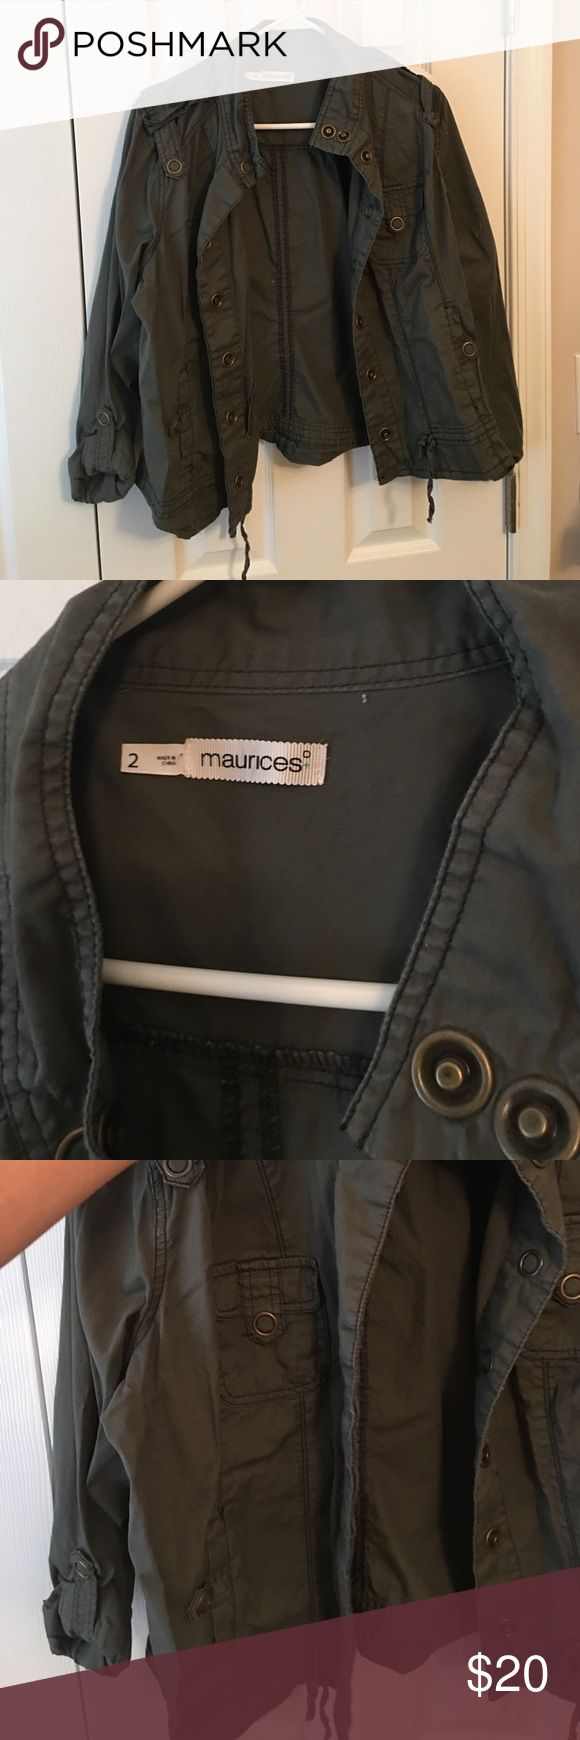 Maurice's Women's military lightweight jacket Like New - Olive Green Maurice's size 2 (plus) women's military style light weight jacket - perfect for spring Maurices Jackets & Coats Utility Jackets